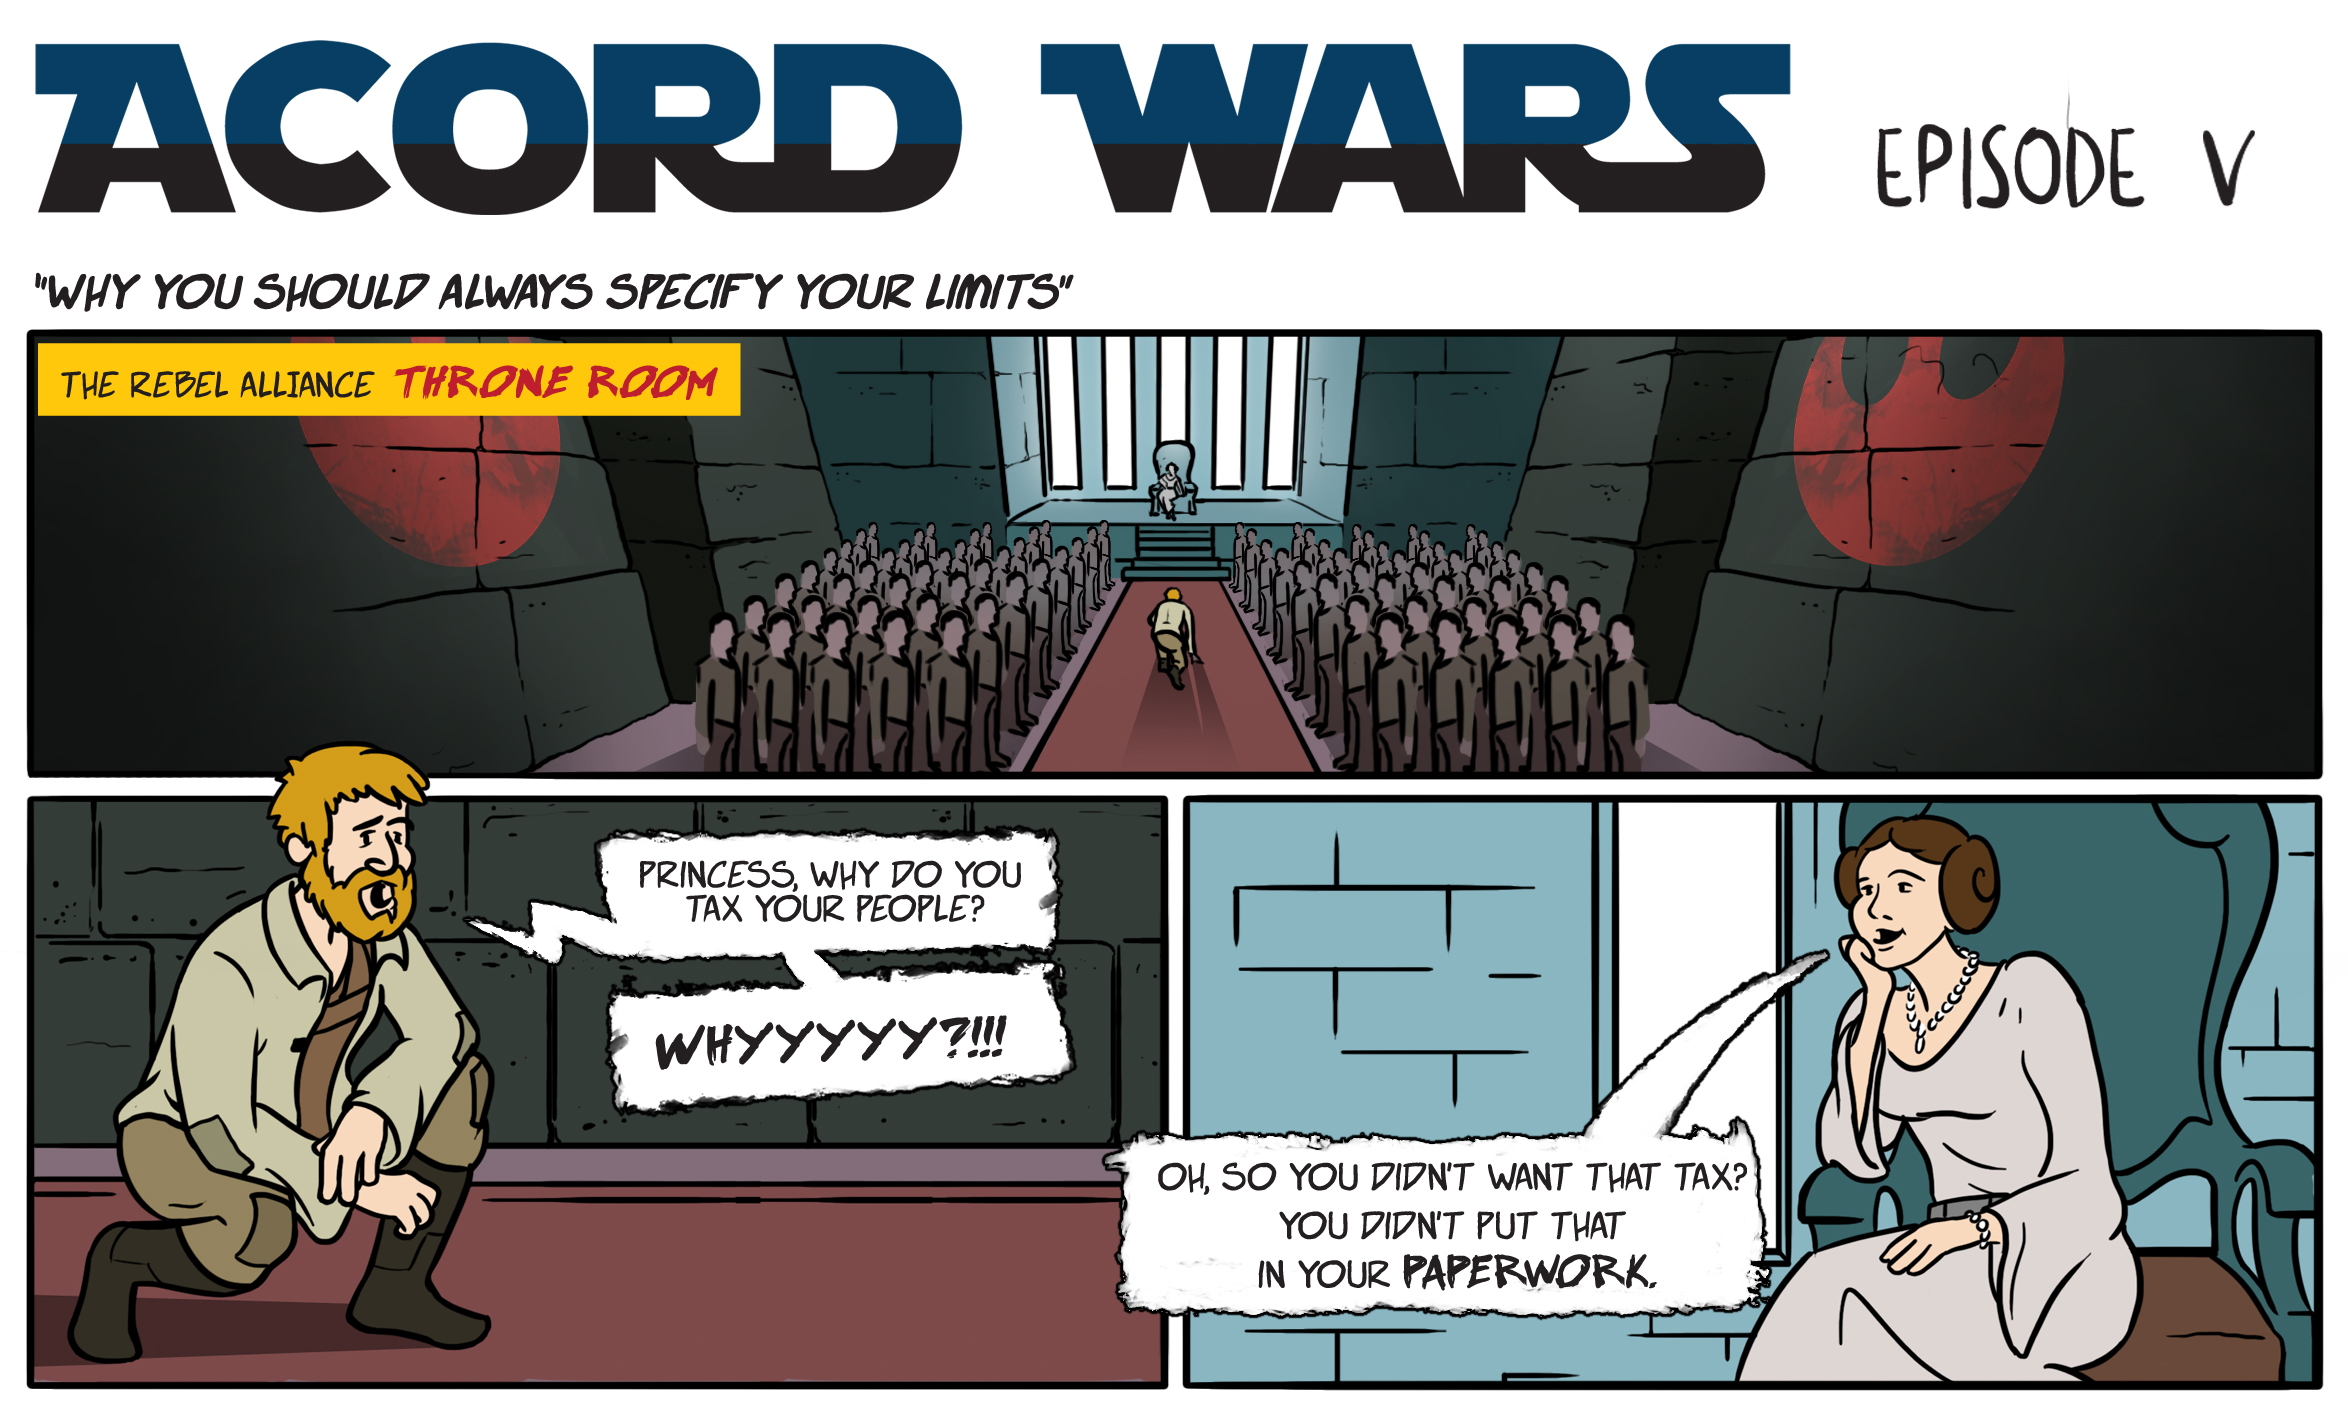 Acord Wars Episode V Macneill Group Inc